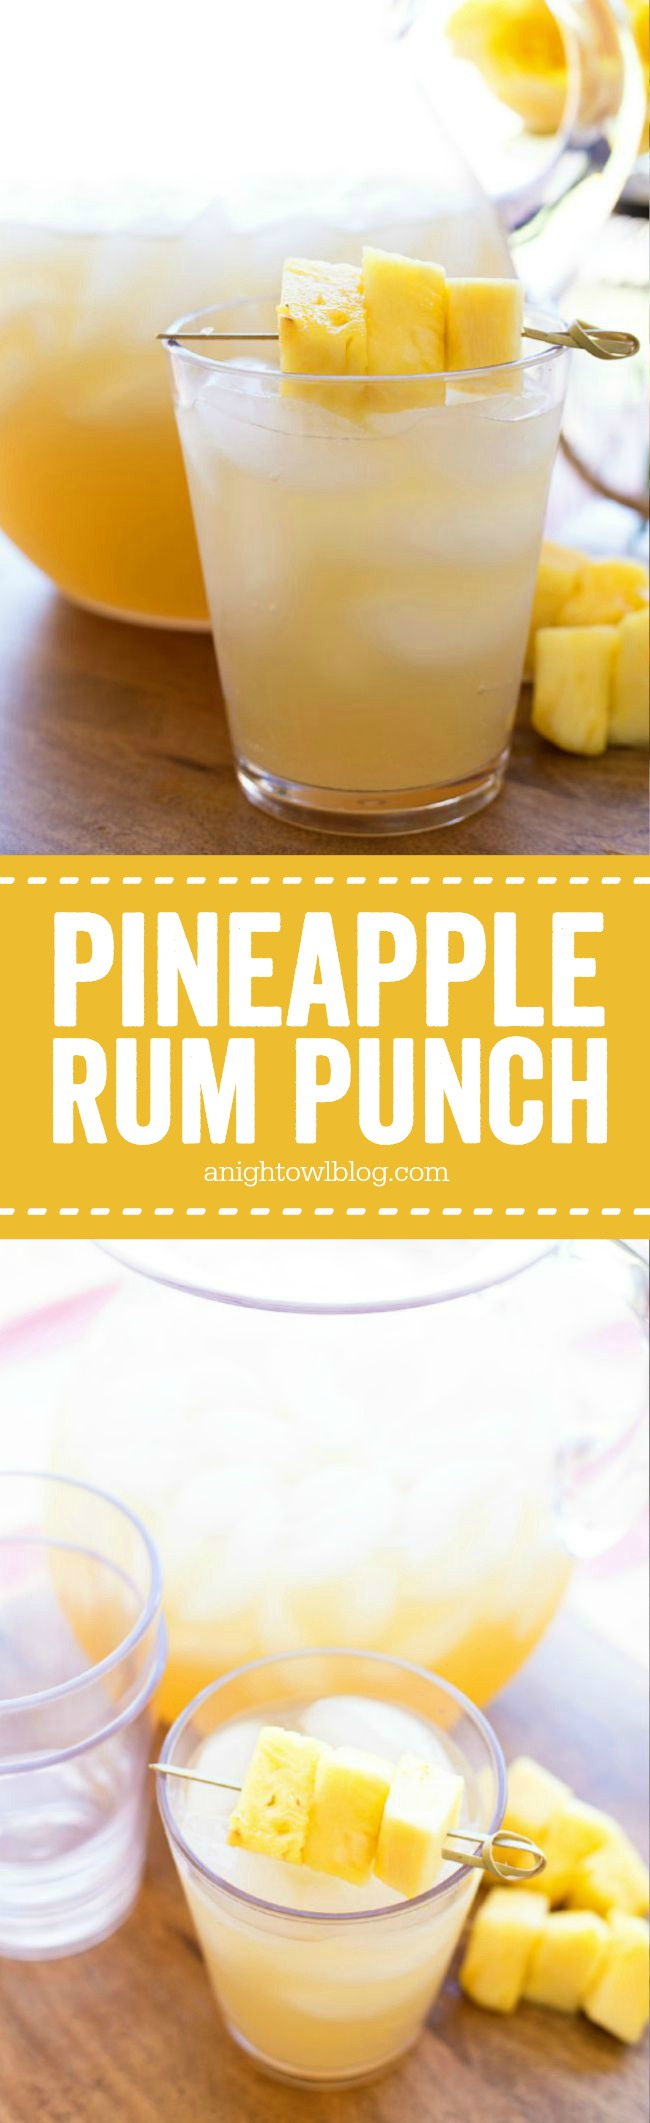 Pinele Rum Punch The Perfect Mix Of Tropical Flavors In One Amazing And Easy To